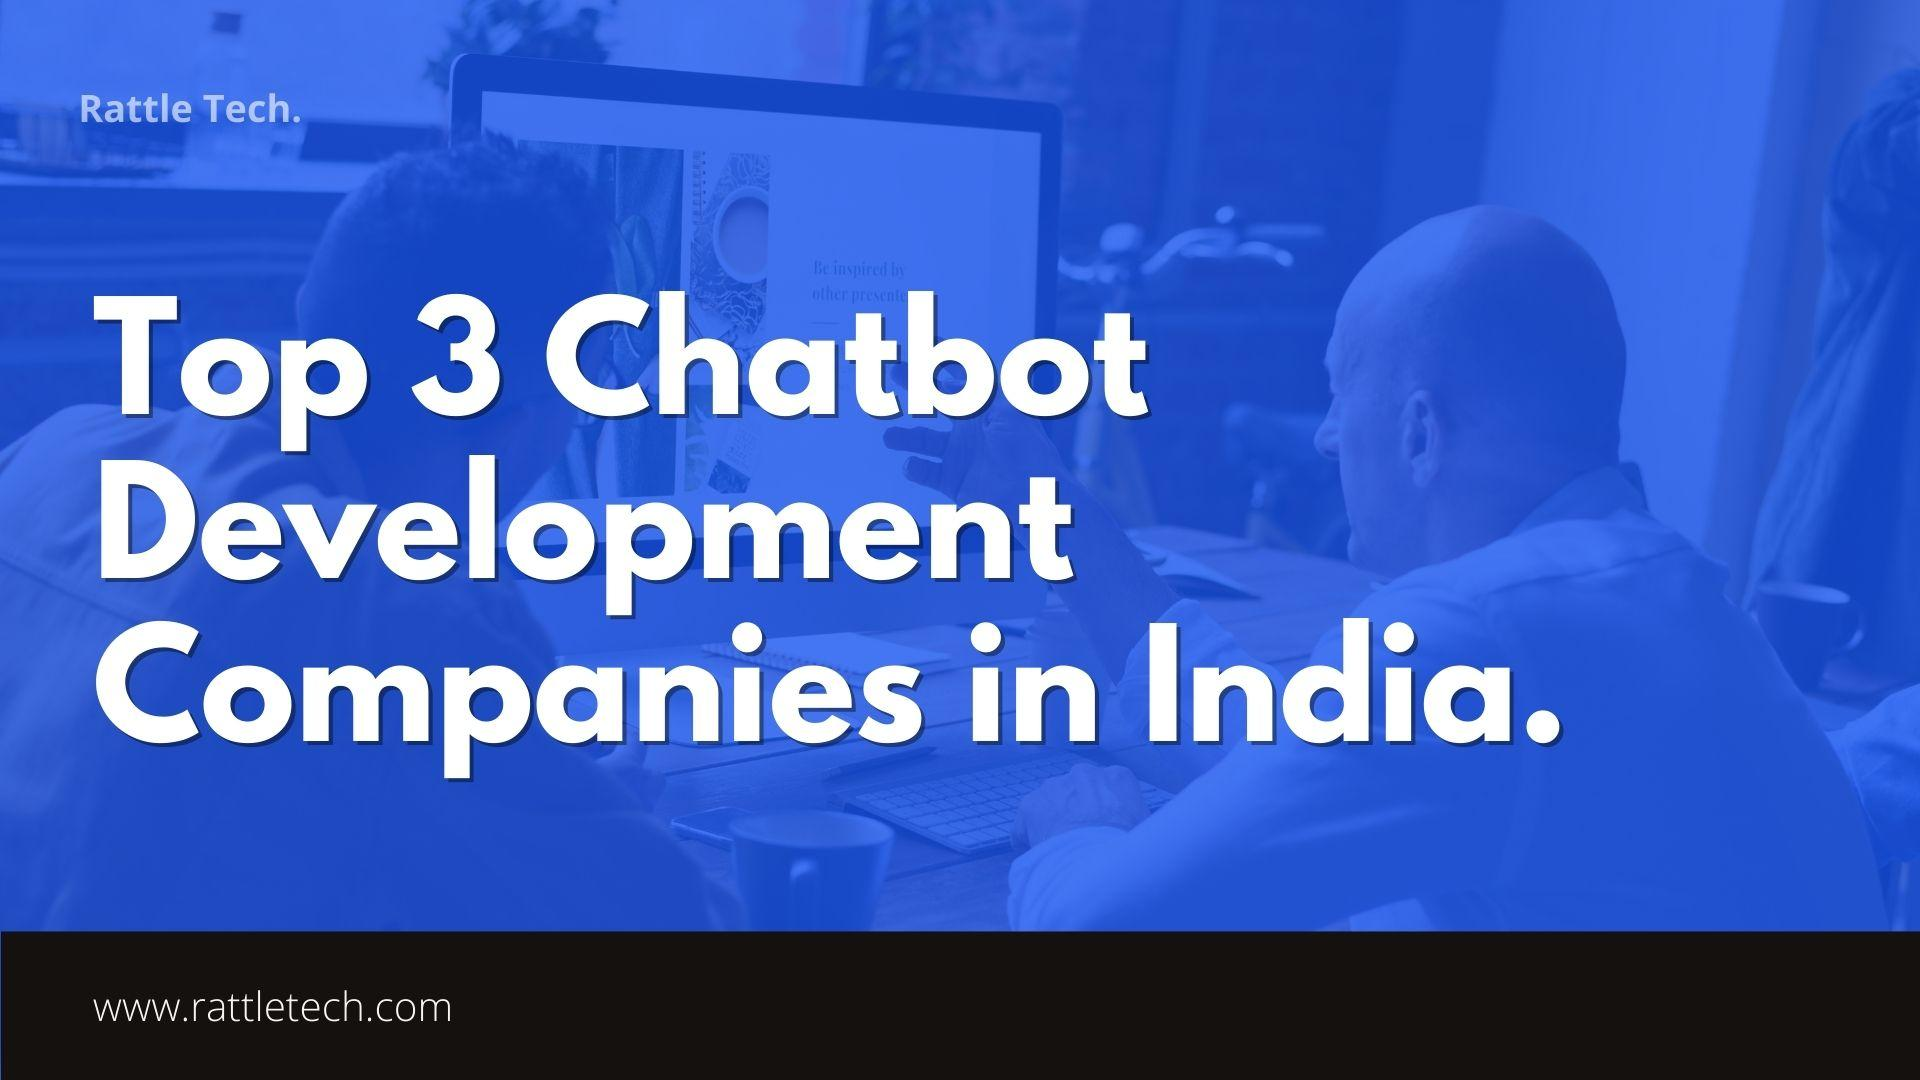 Top chatbot Development Companies in India.